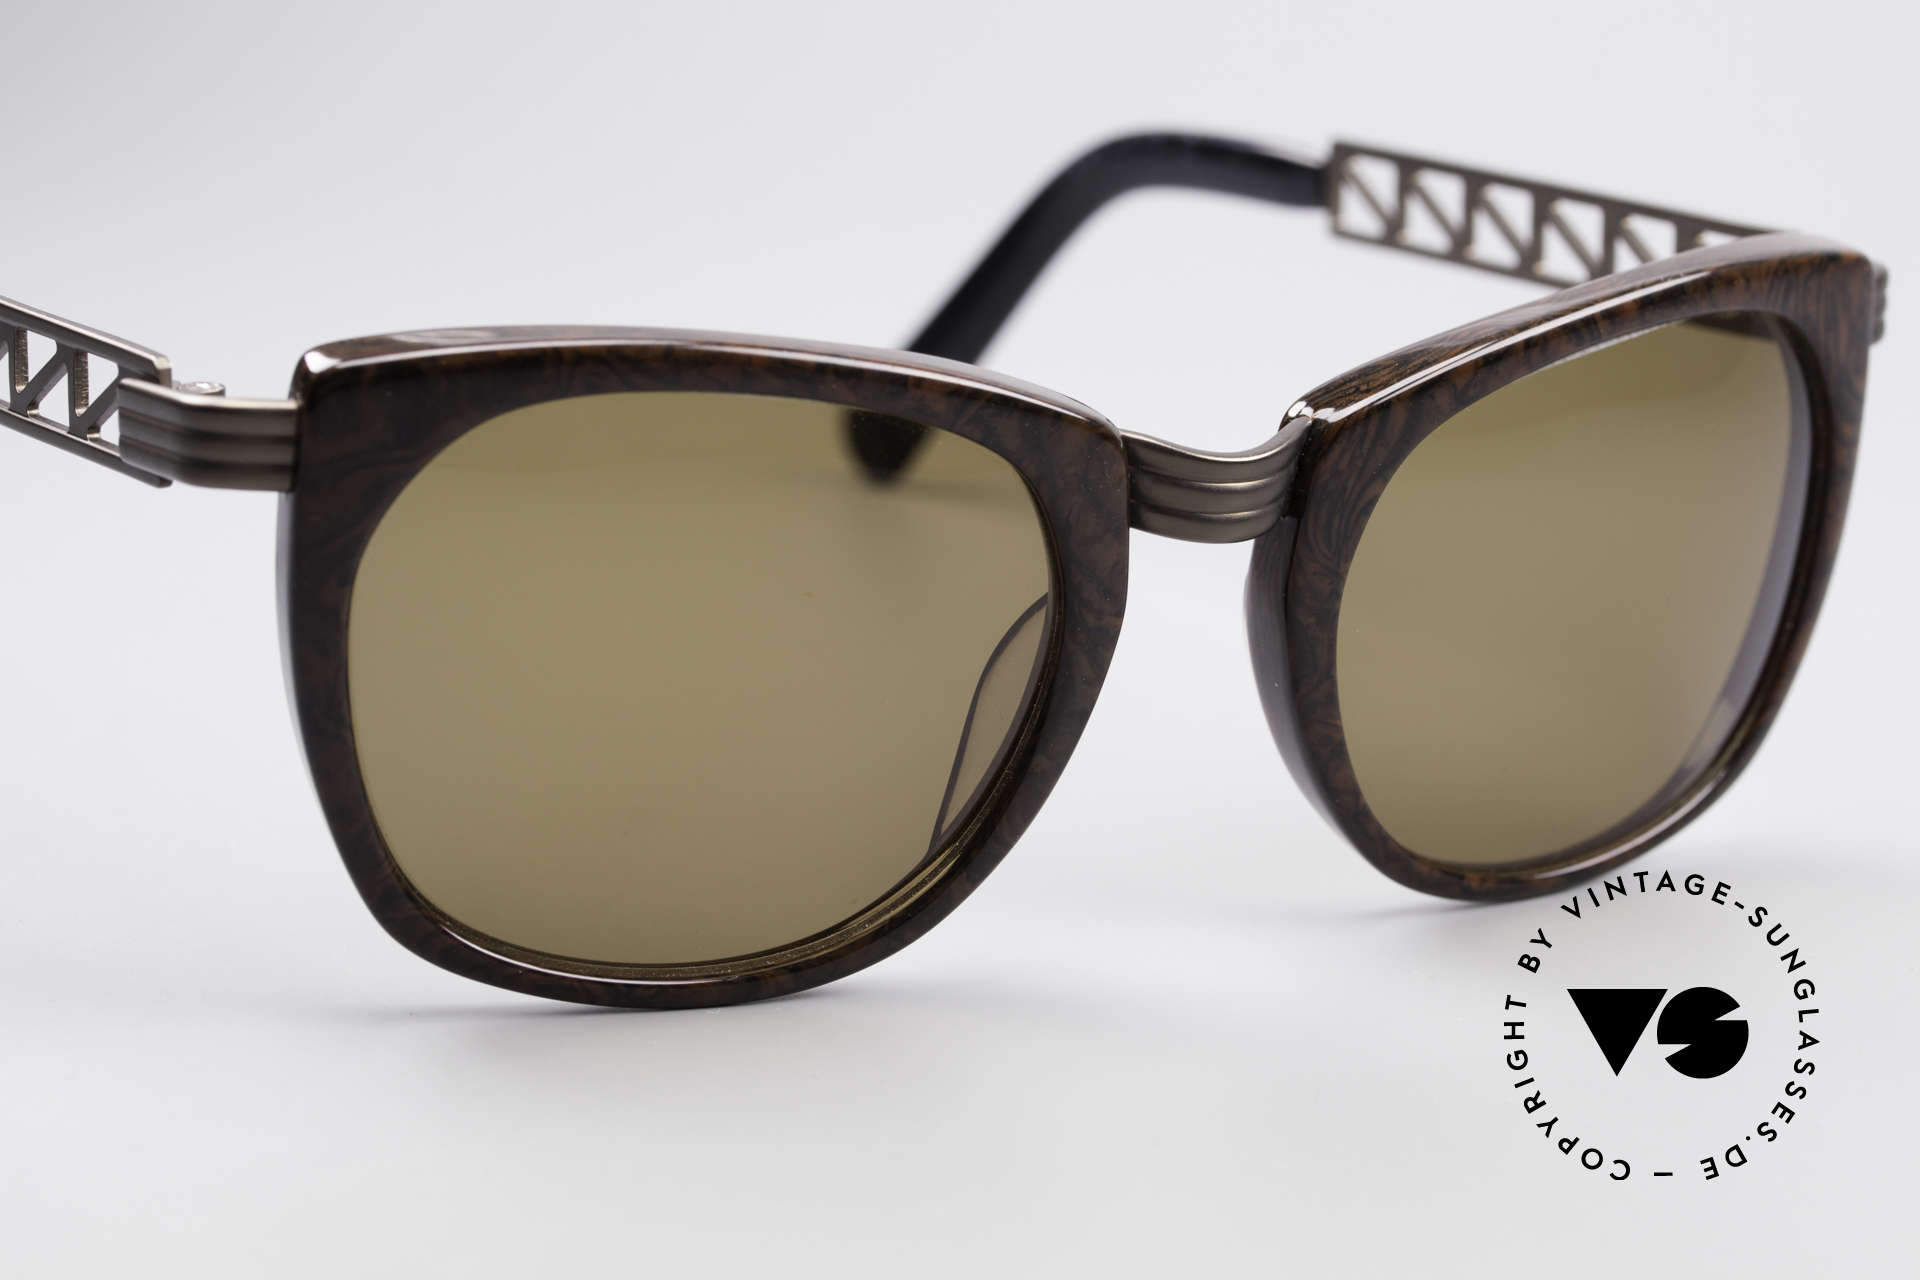 Jean Paul Gaultier 56-0272 Steampunk JPG Sunglasses, NO RETRO shades, but a 20 years old ORIGINAL, Made for Men and Women